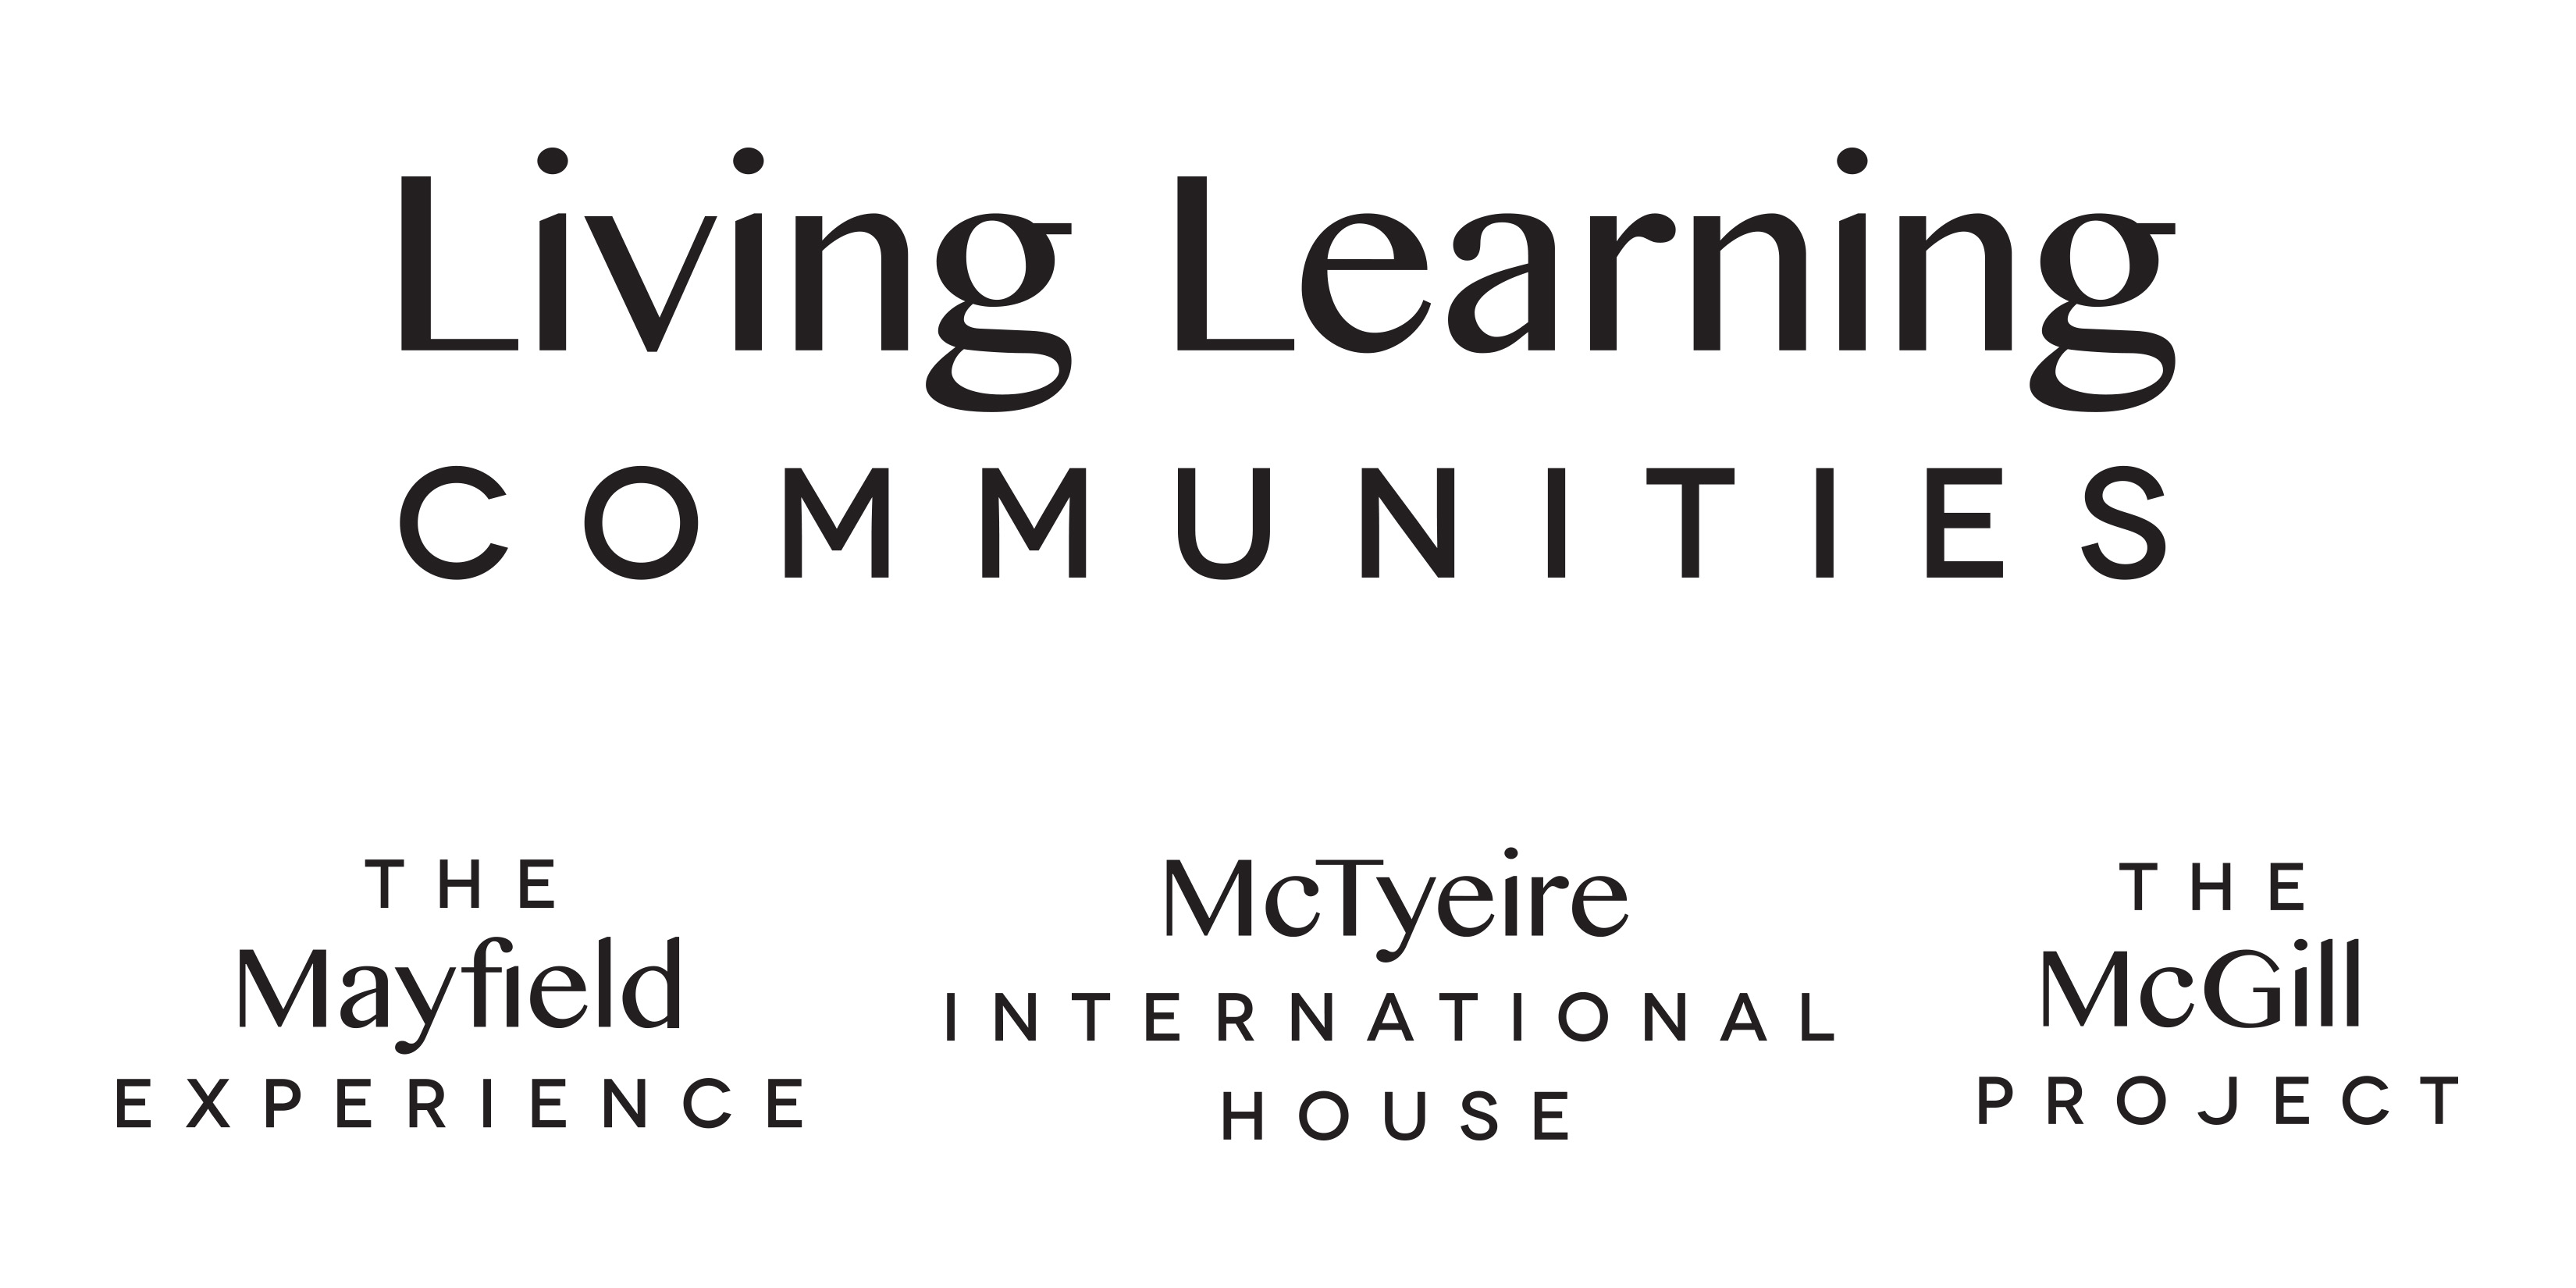 Living Learning Communities wordmark